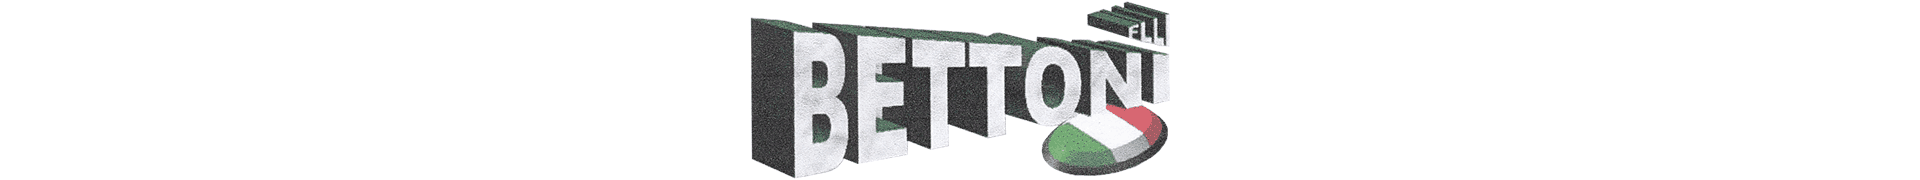 Bettoni F.lli Utensili - Logo Wide